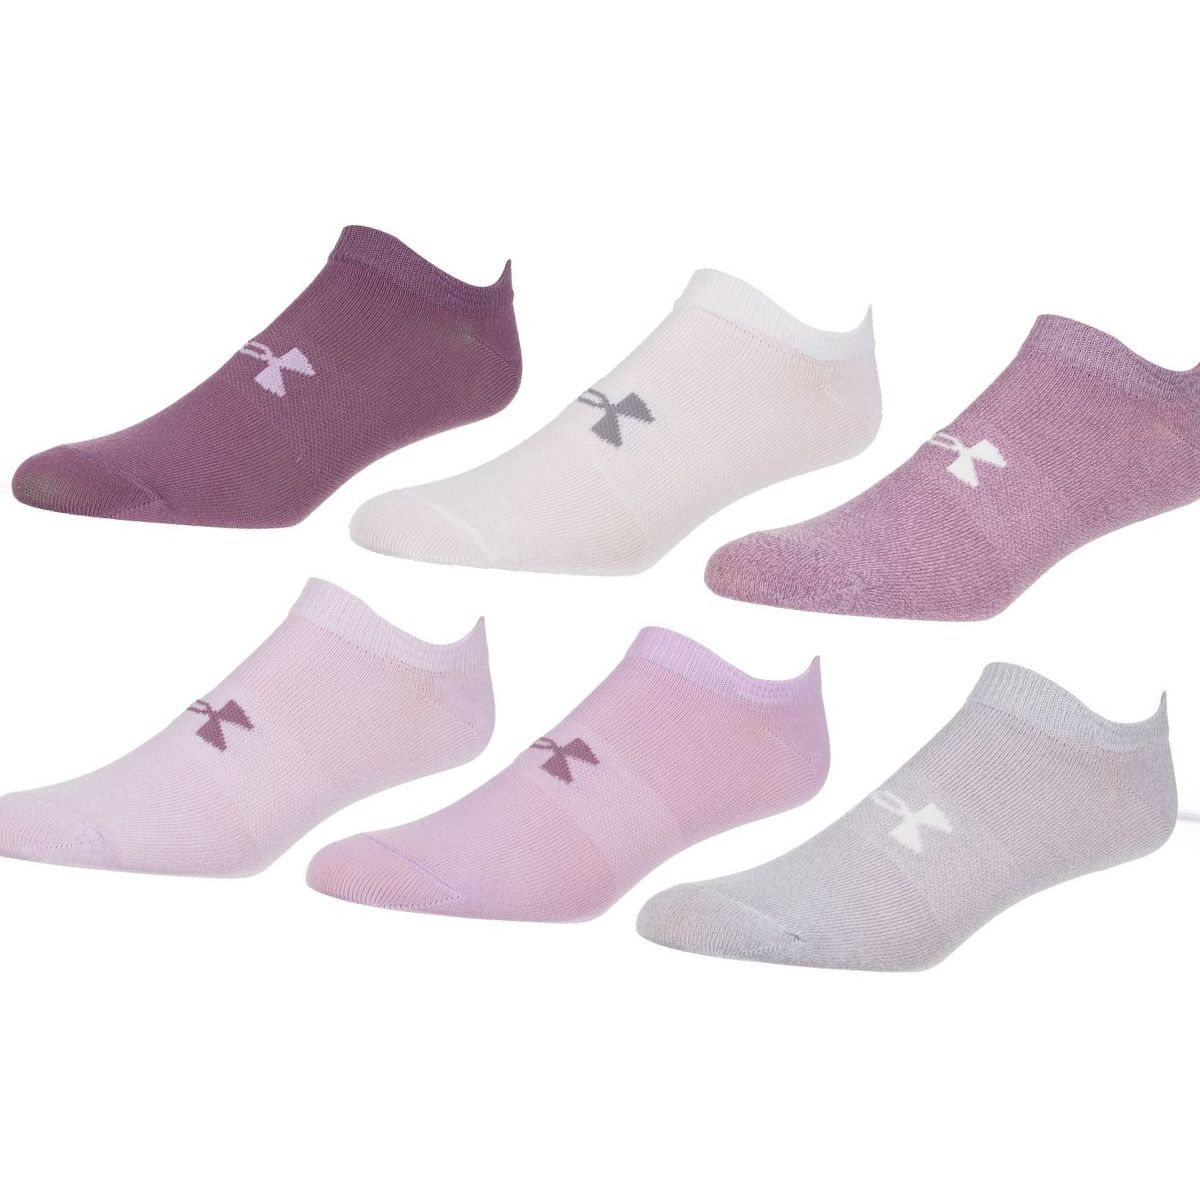 Under Armour Essential No-Show 2.0 Sock - 6-Pack - Women's